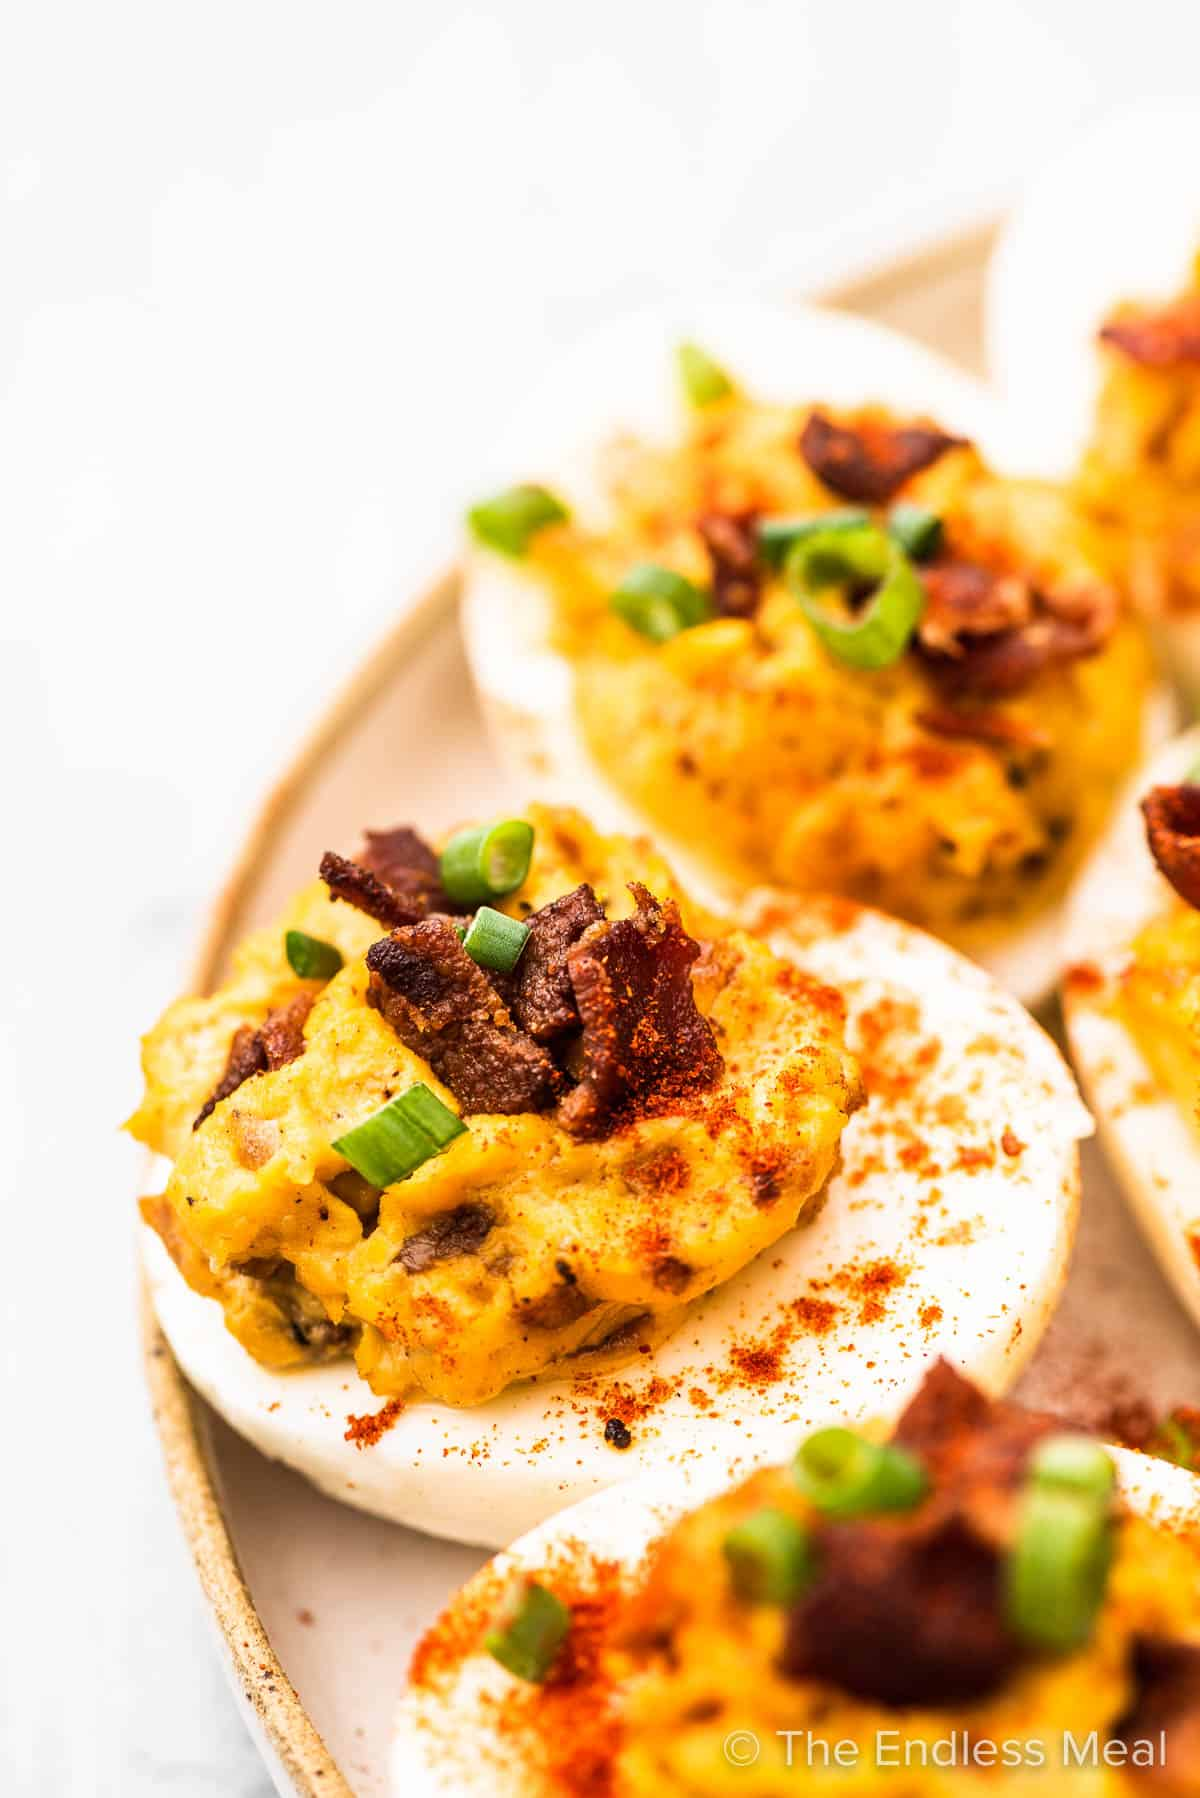 Deviled eggs with bacon and topped with green onions on a plate.